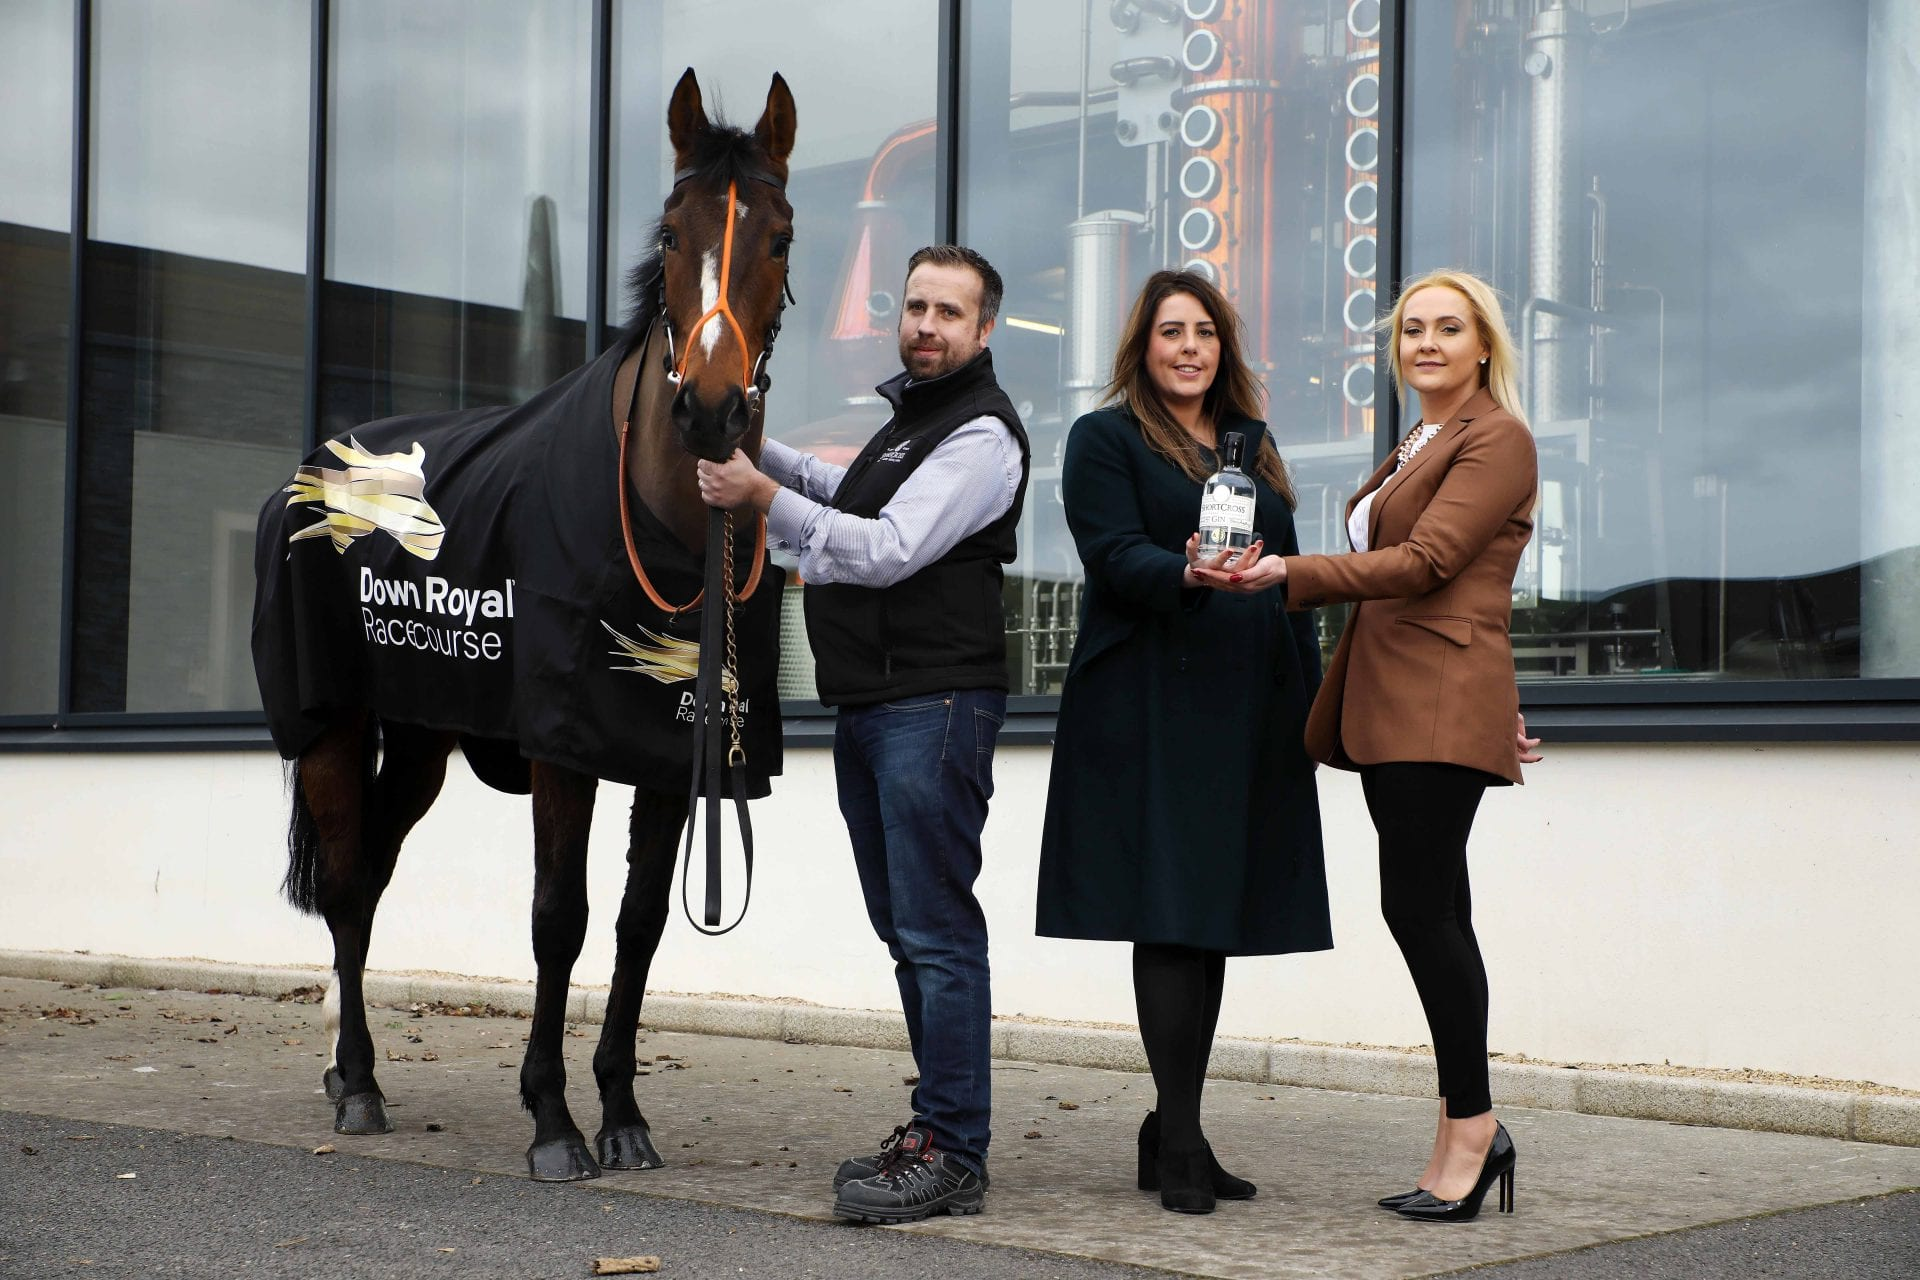 Down Royal Racecourse has secured a major three-year sponsorship deal with Northern Ireland's leading craft spirit, Shortcross Gin.